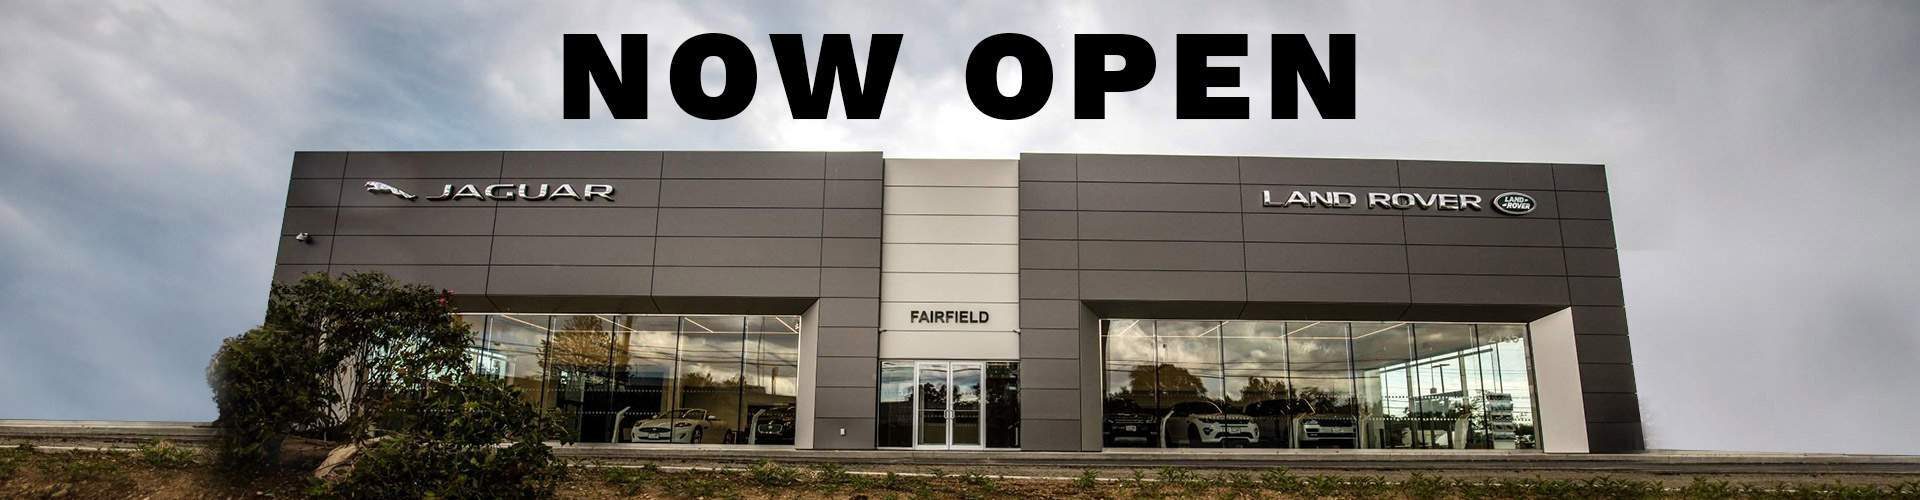 Land Rover Fairfield Open Now